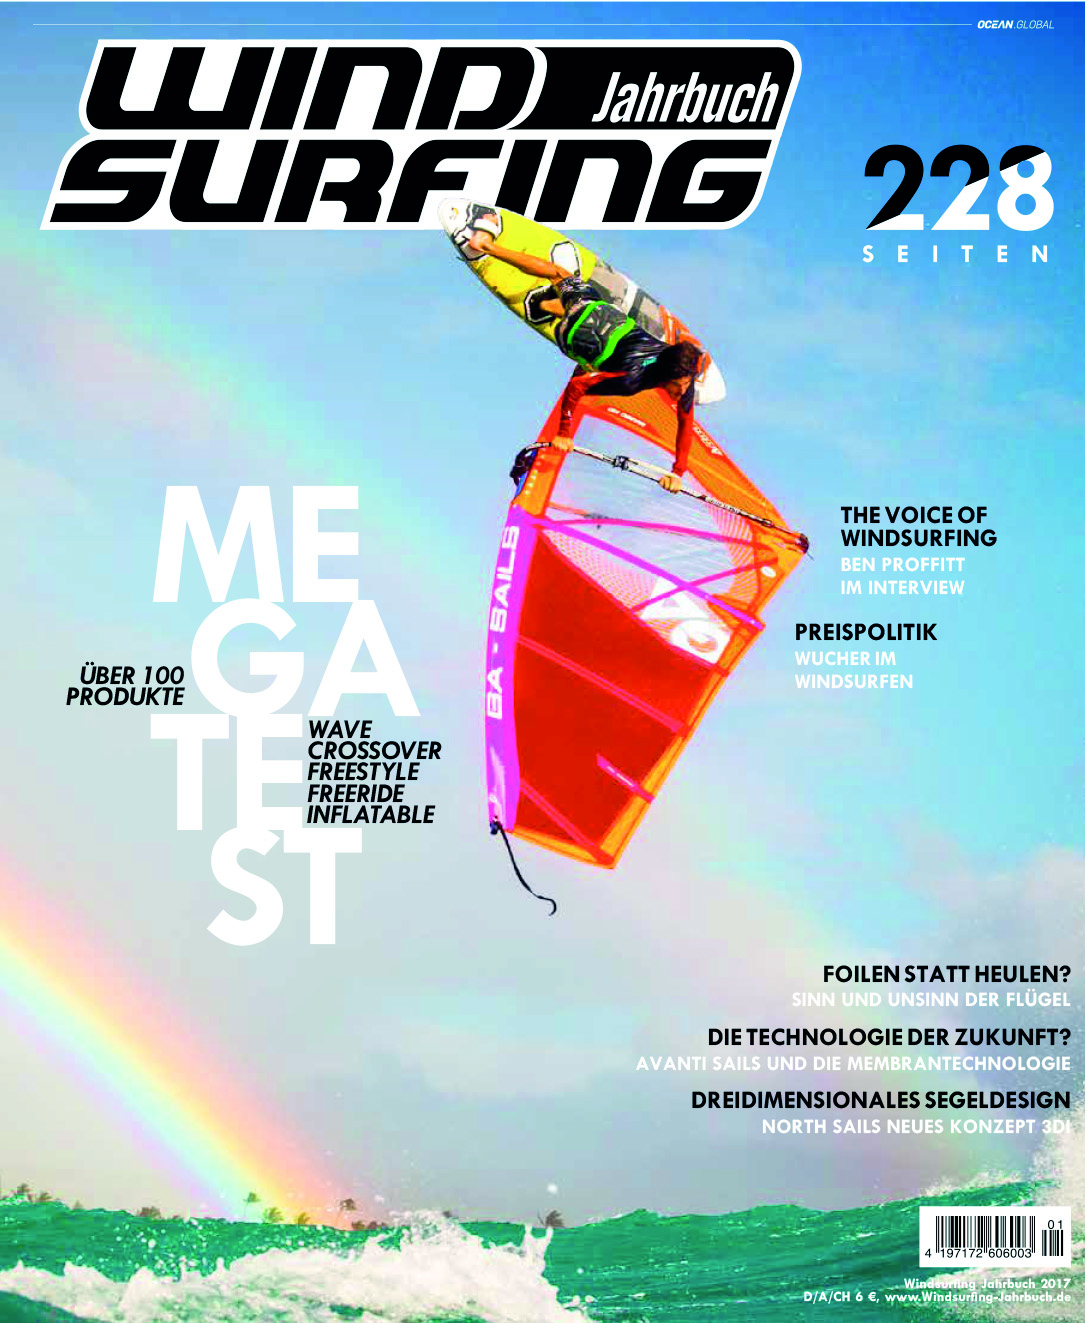 Windsurfing-Journal Jahrbuch 2017